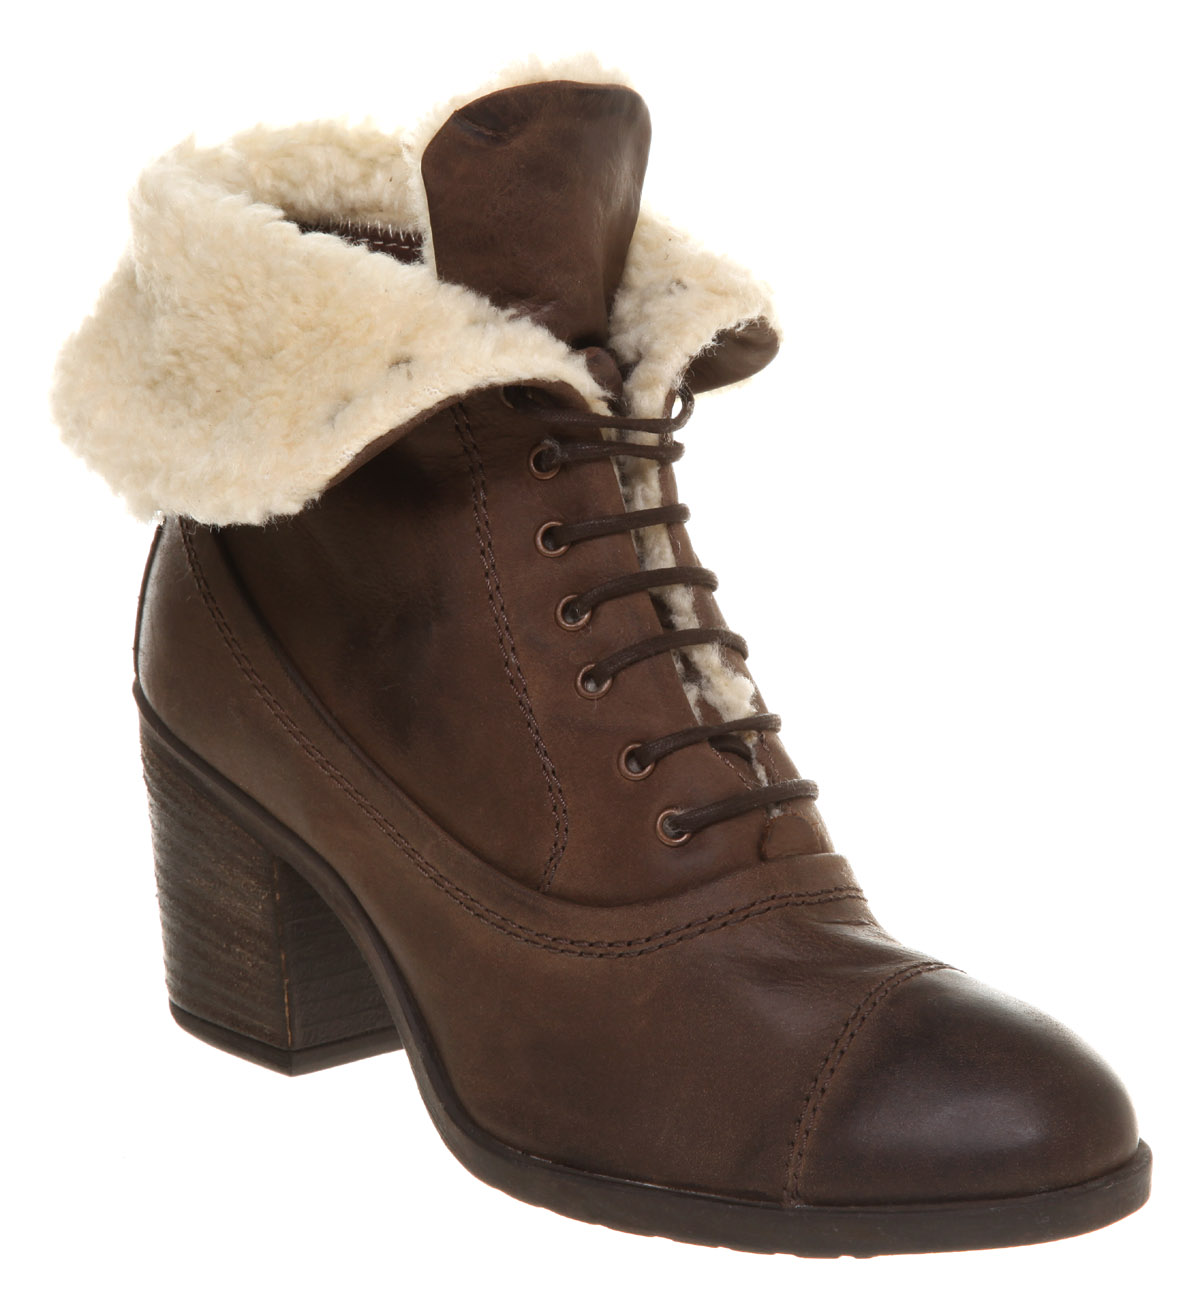 Womens-Office-Koala-Lace-Up-Leather-Boots-Shoes-Deal